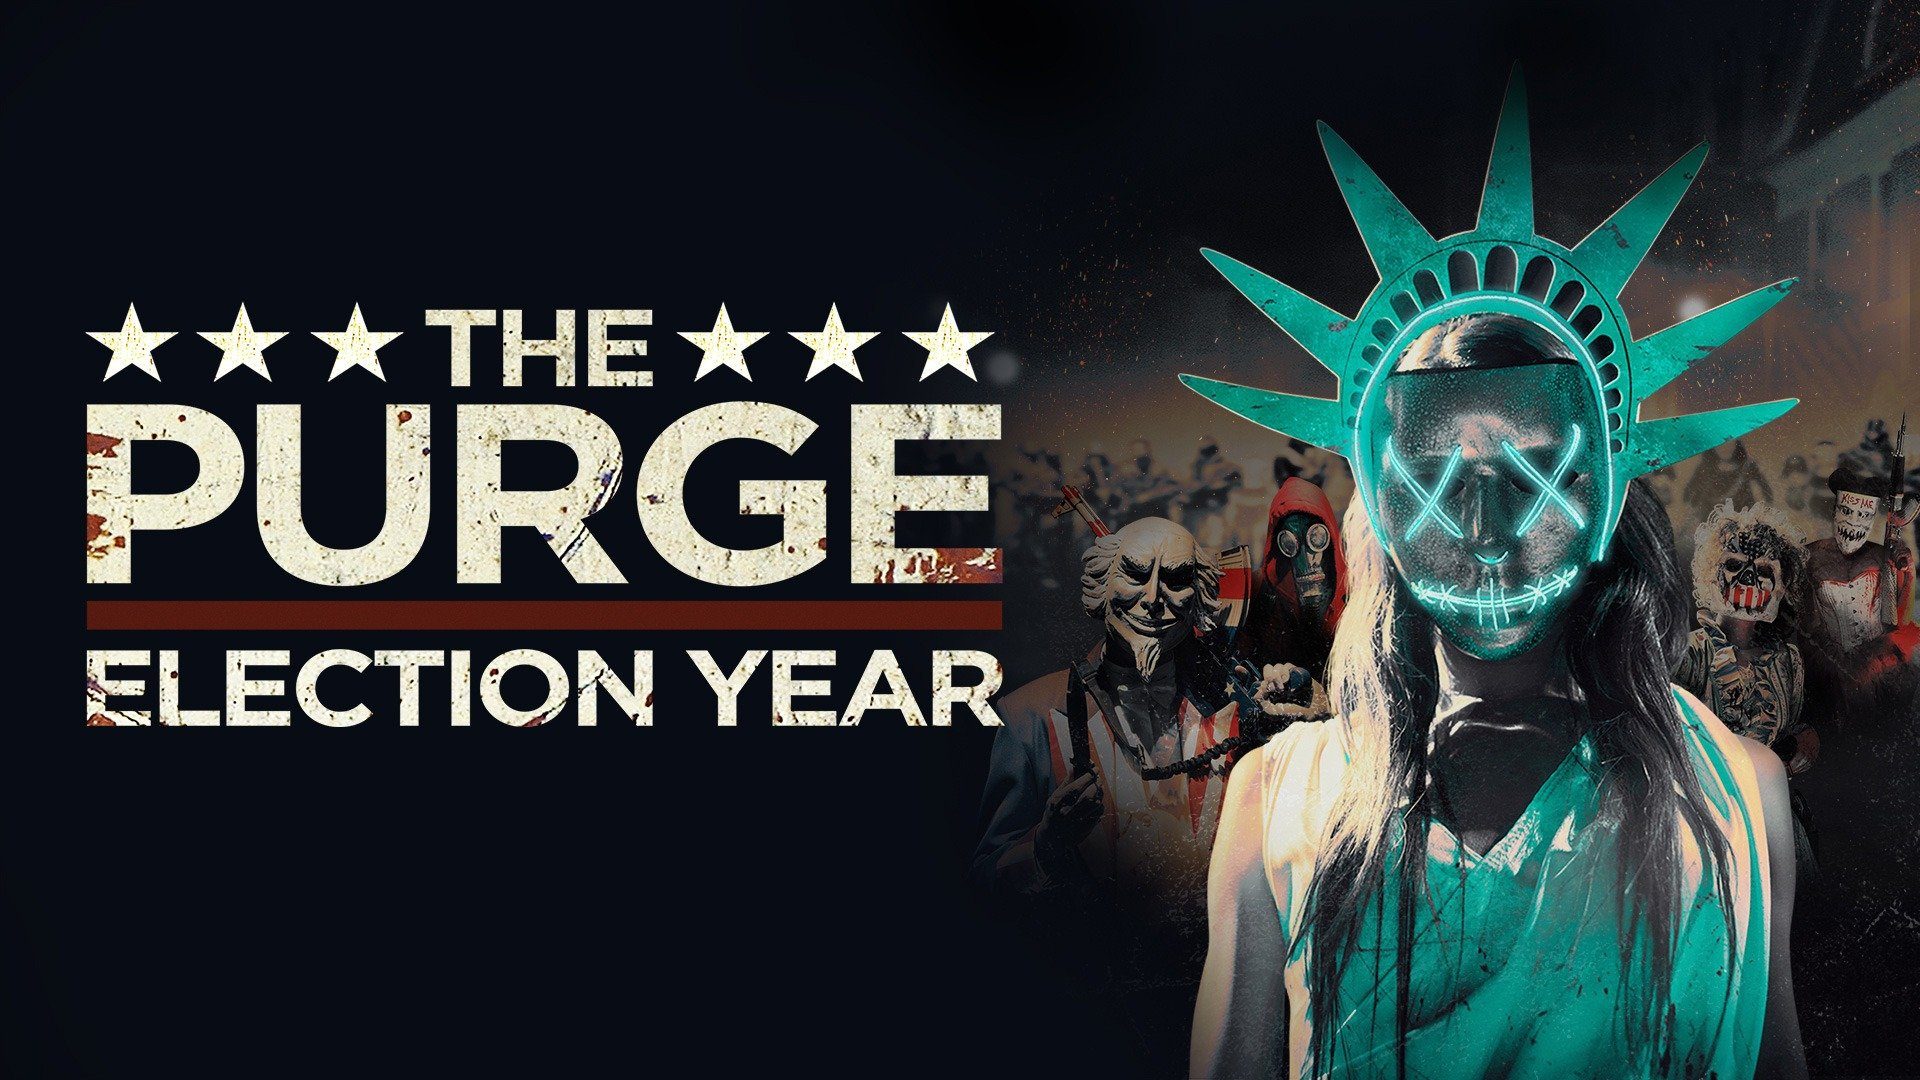 The Purge Election Year Movietickets